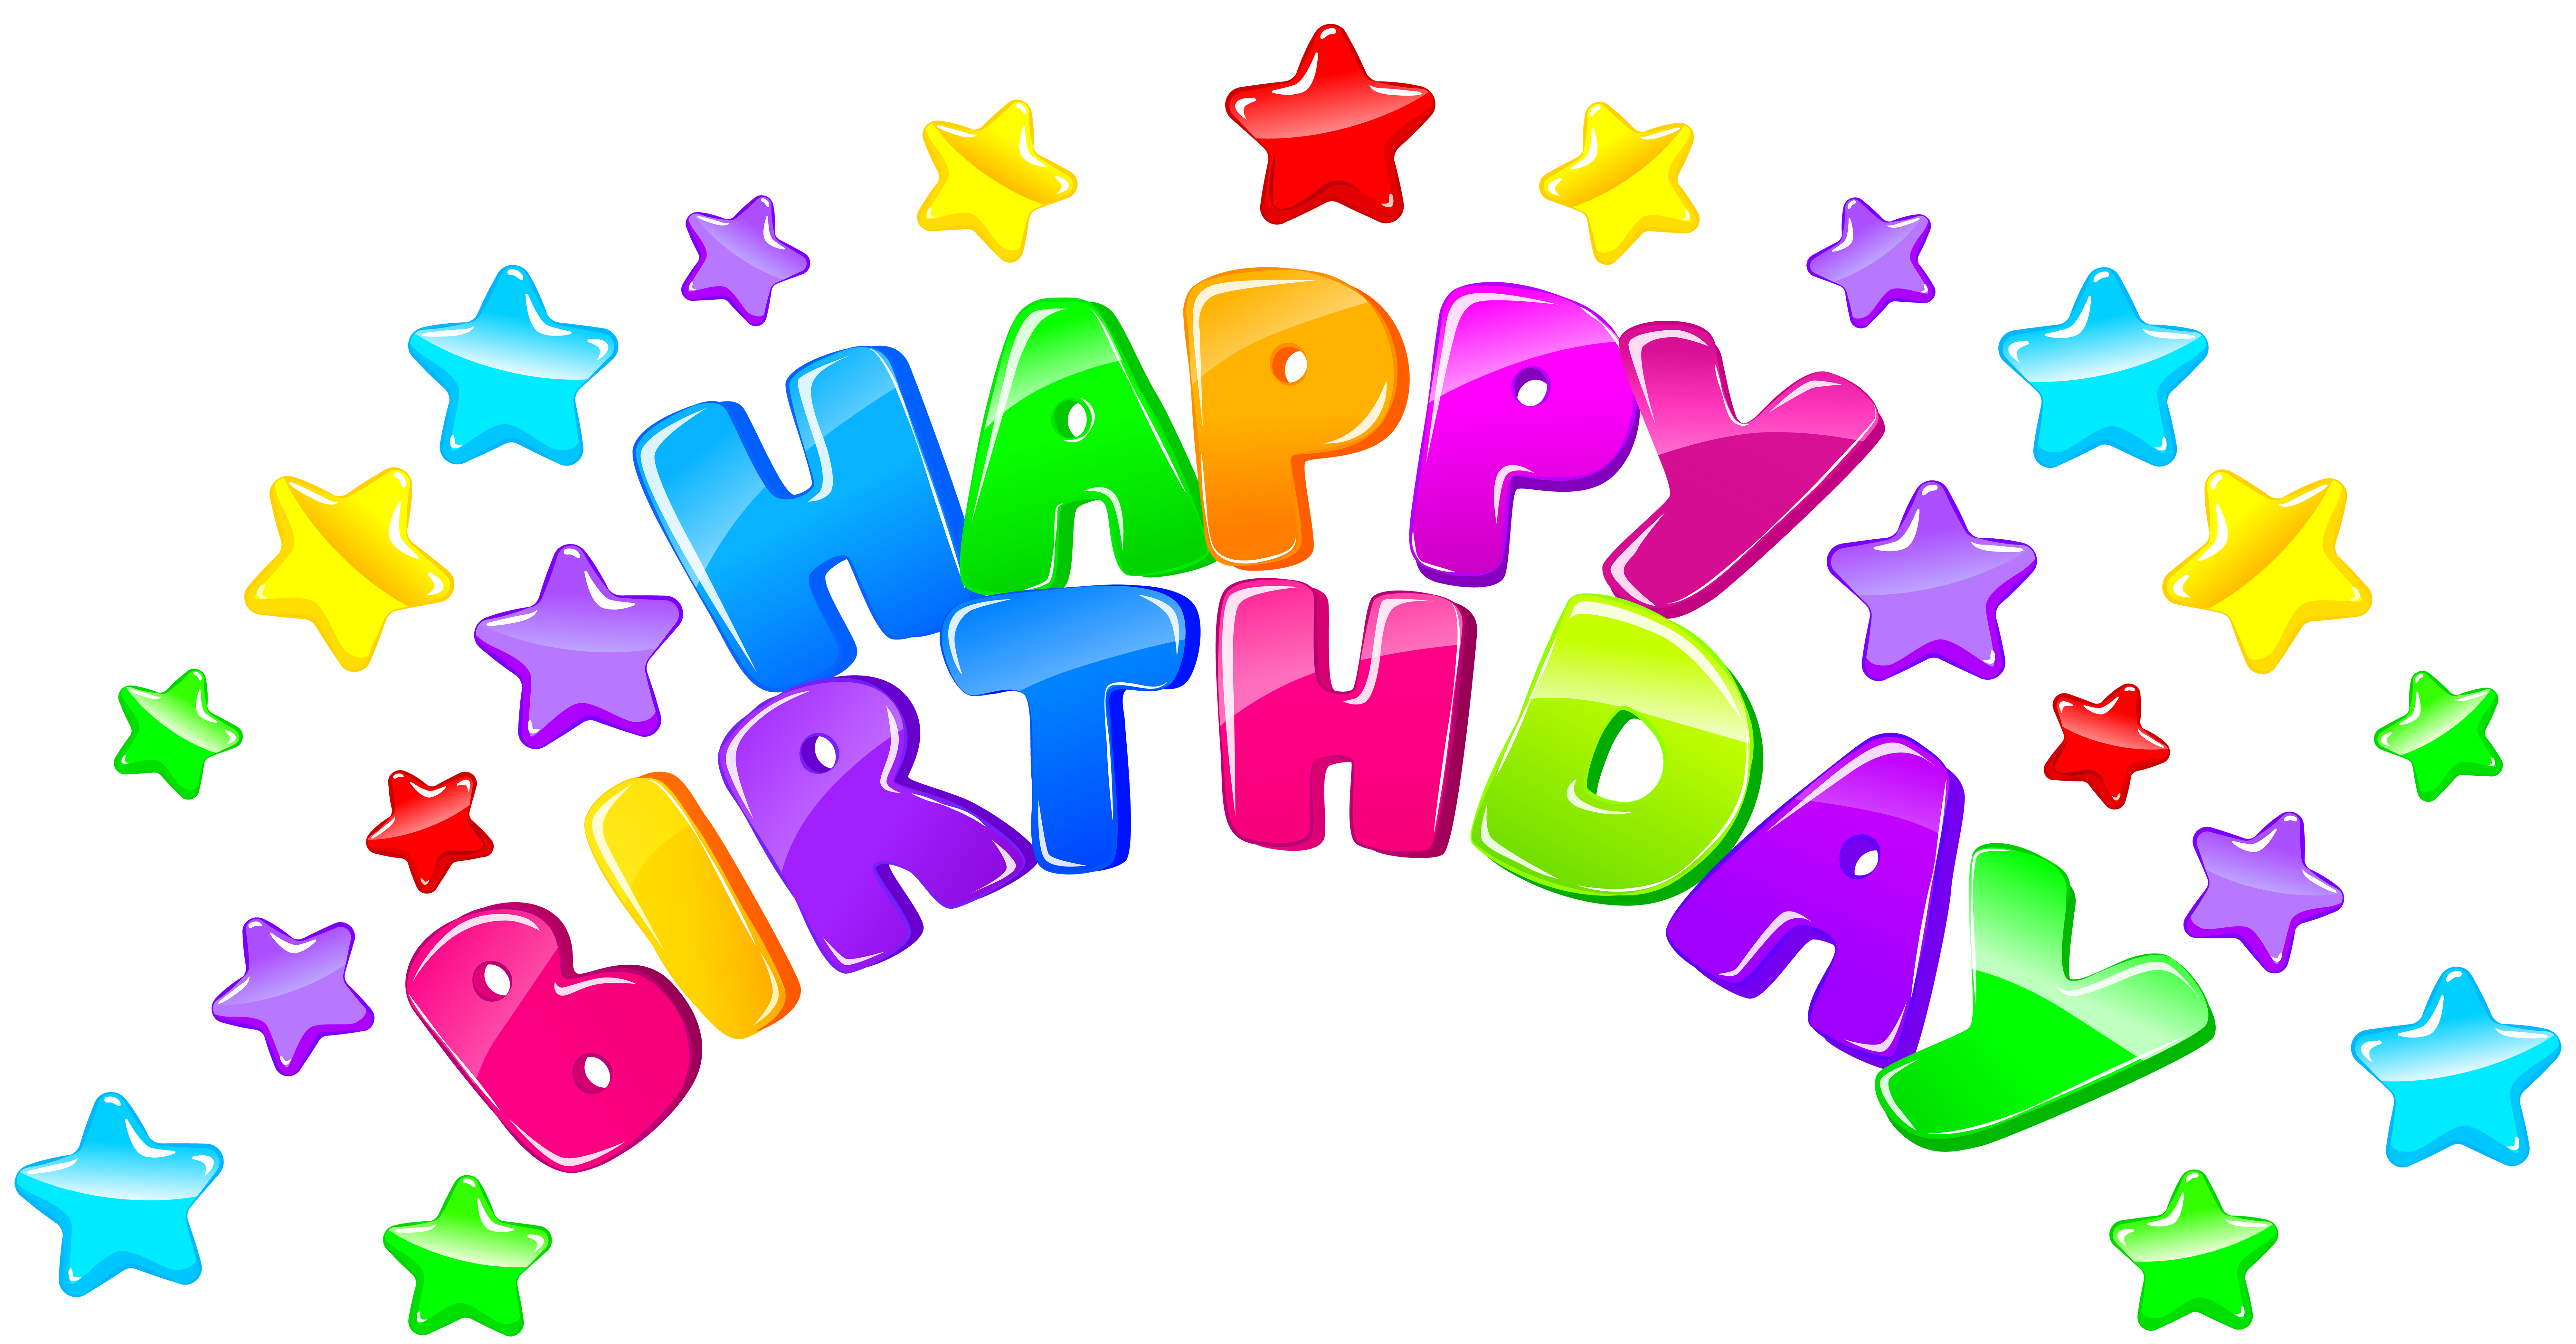 Mail clipart msg. Happy birthday decor with